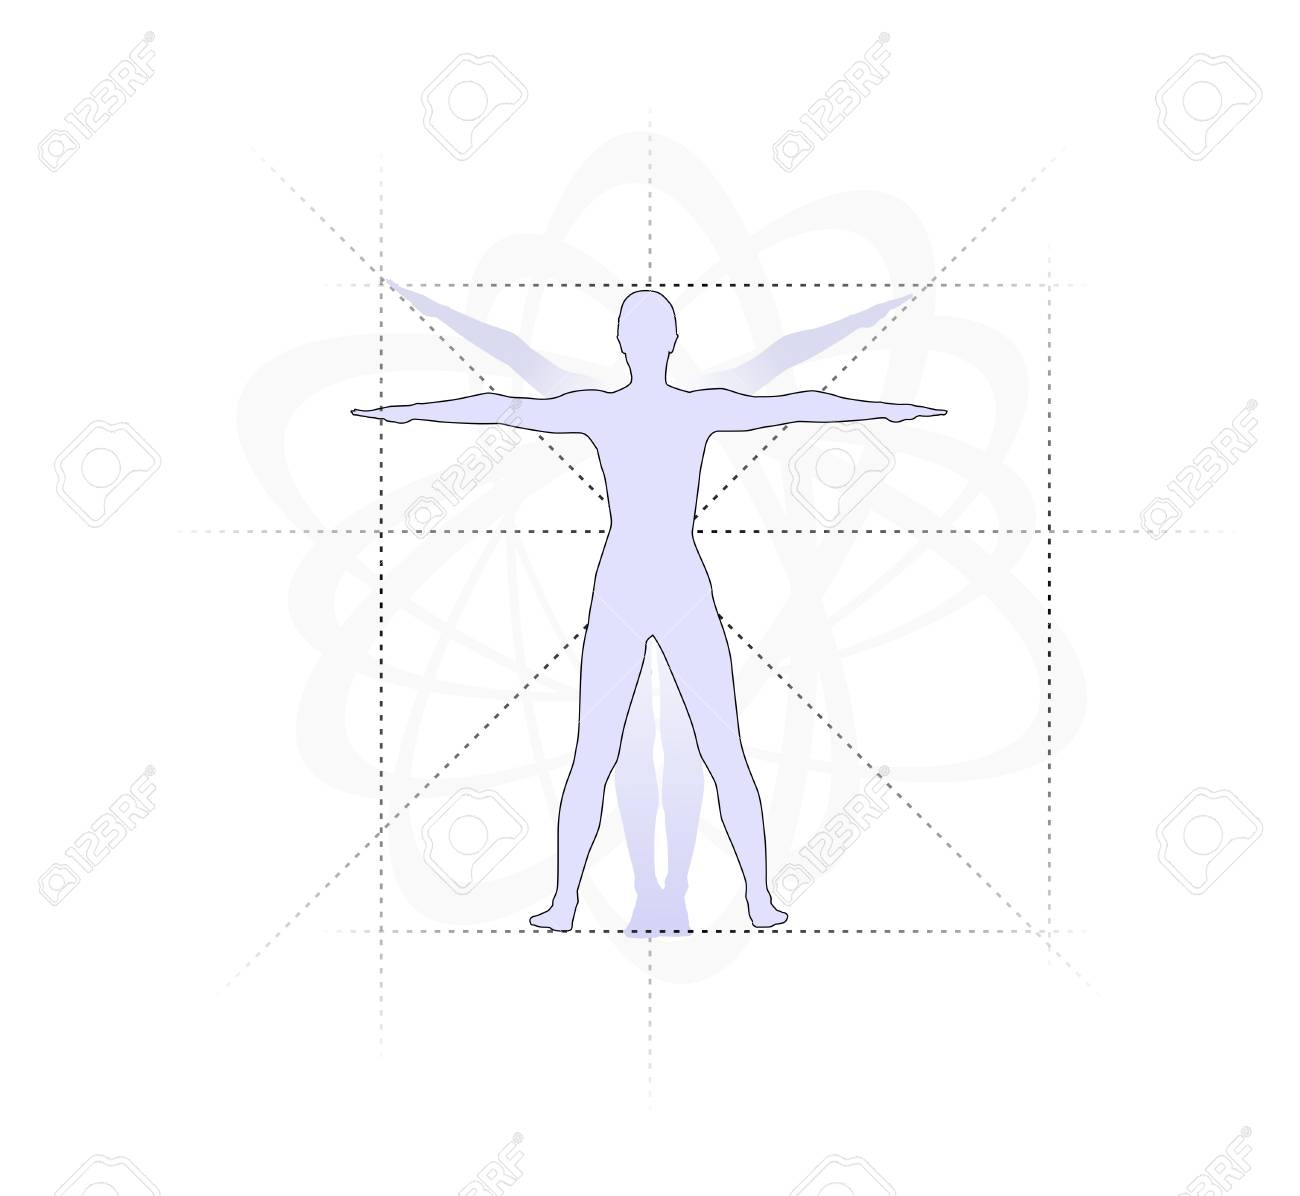 Study Of The Human Body With Proportions Stock Photo Picture And